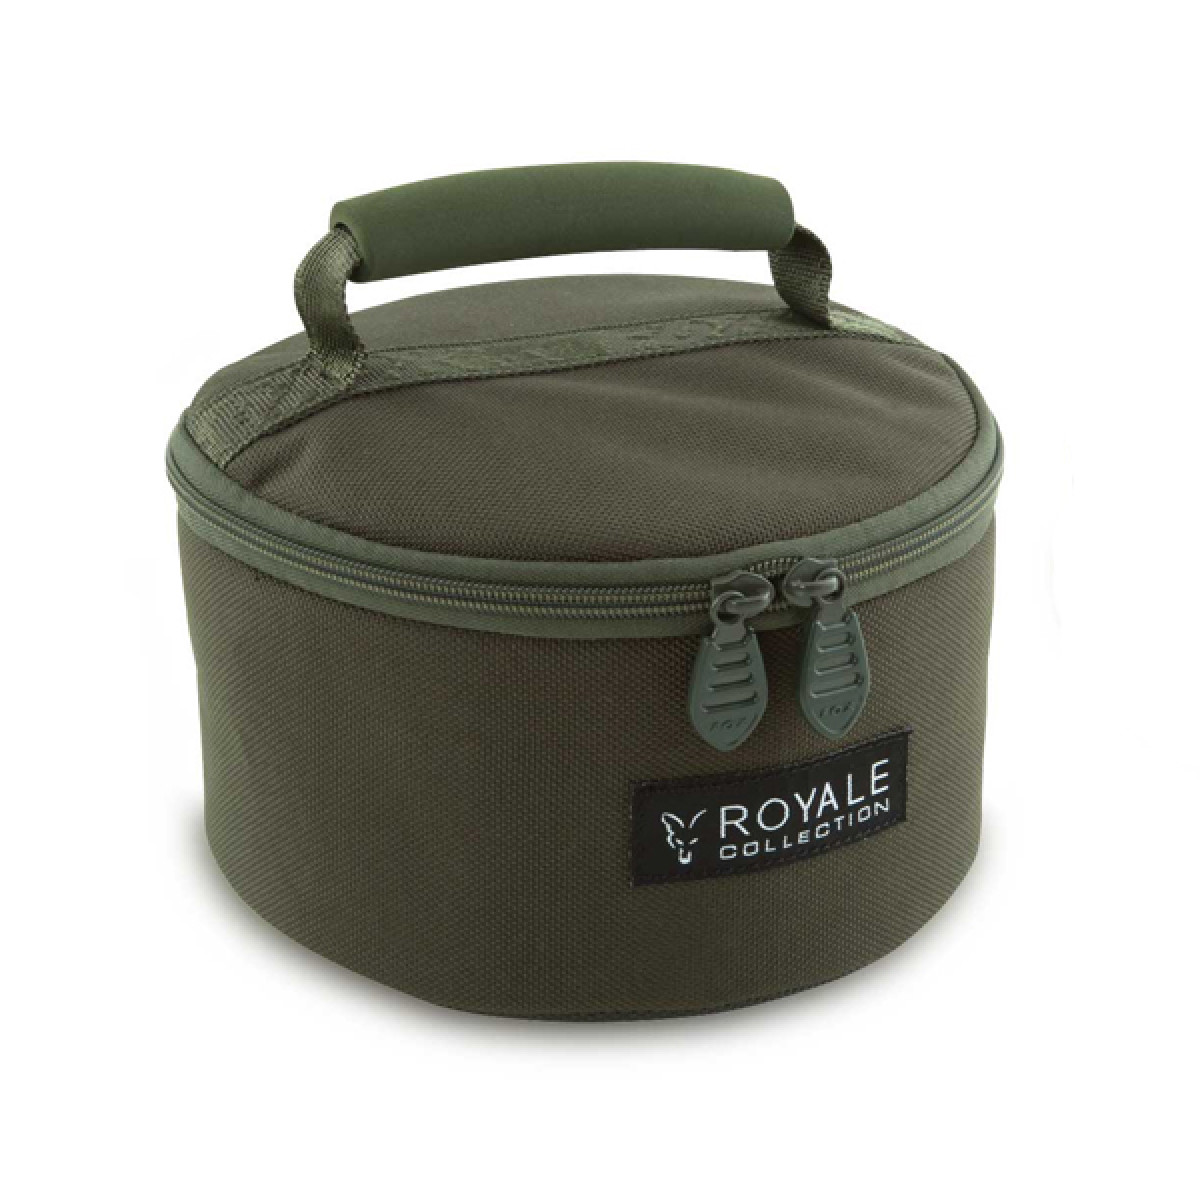 Royale Cookware Bags